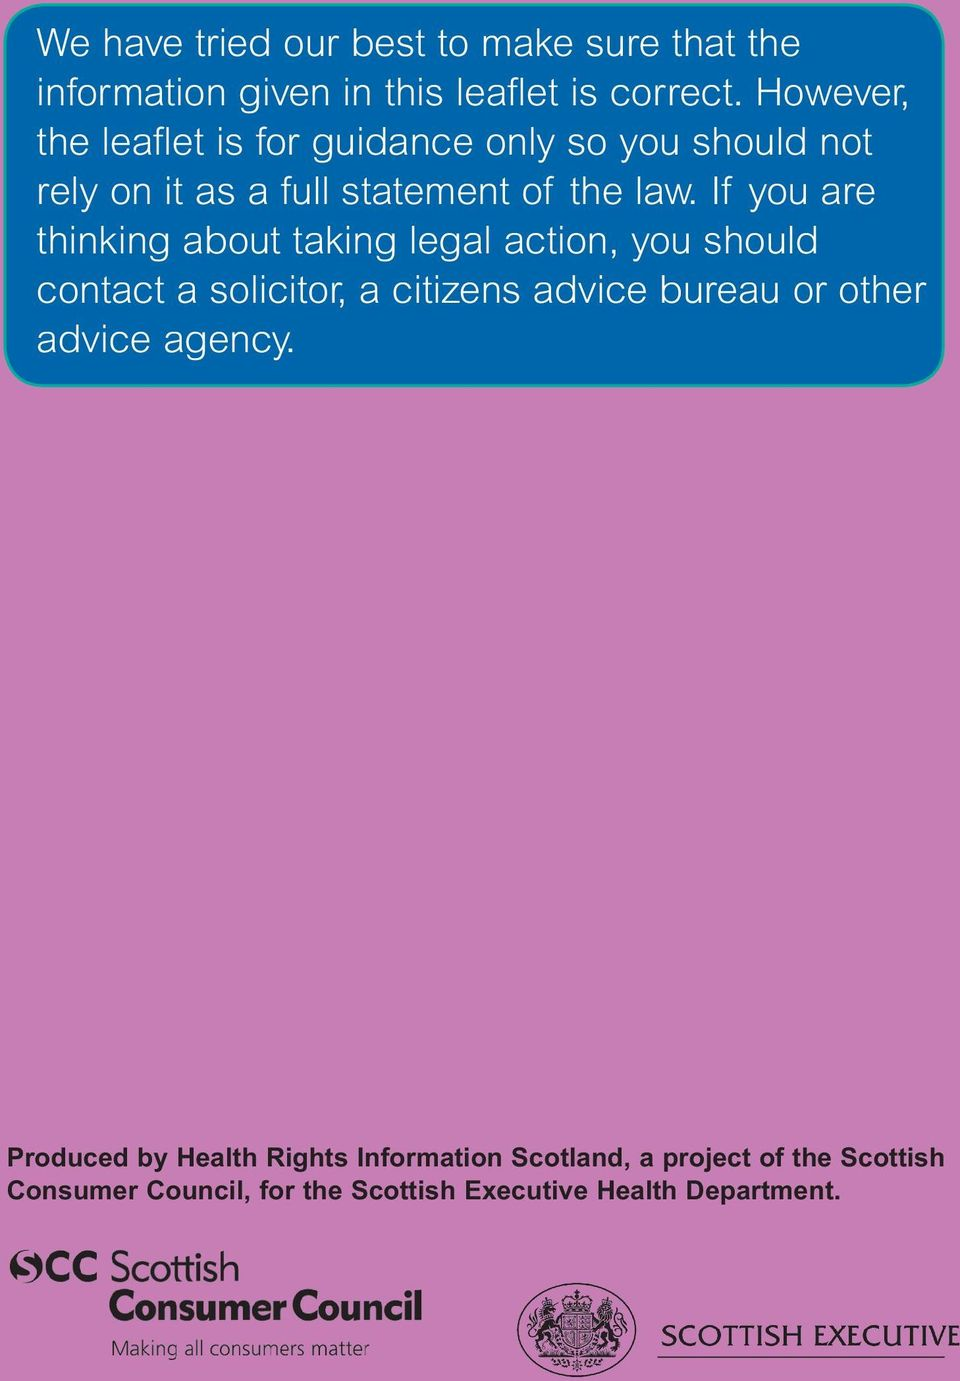 If you are thinking about taking legal action, you should contact a solicitor, a citizens advice bureau or other